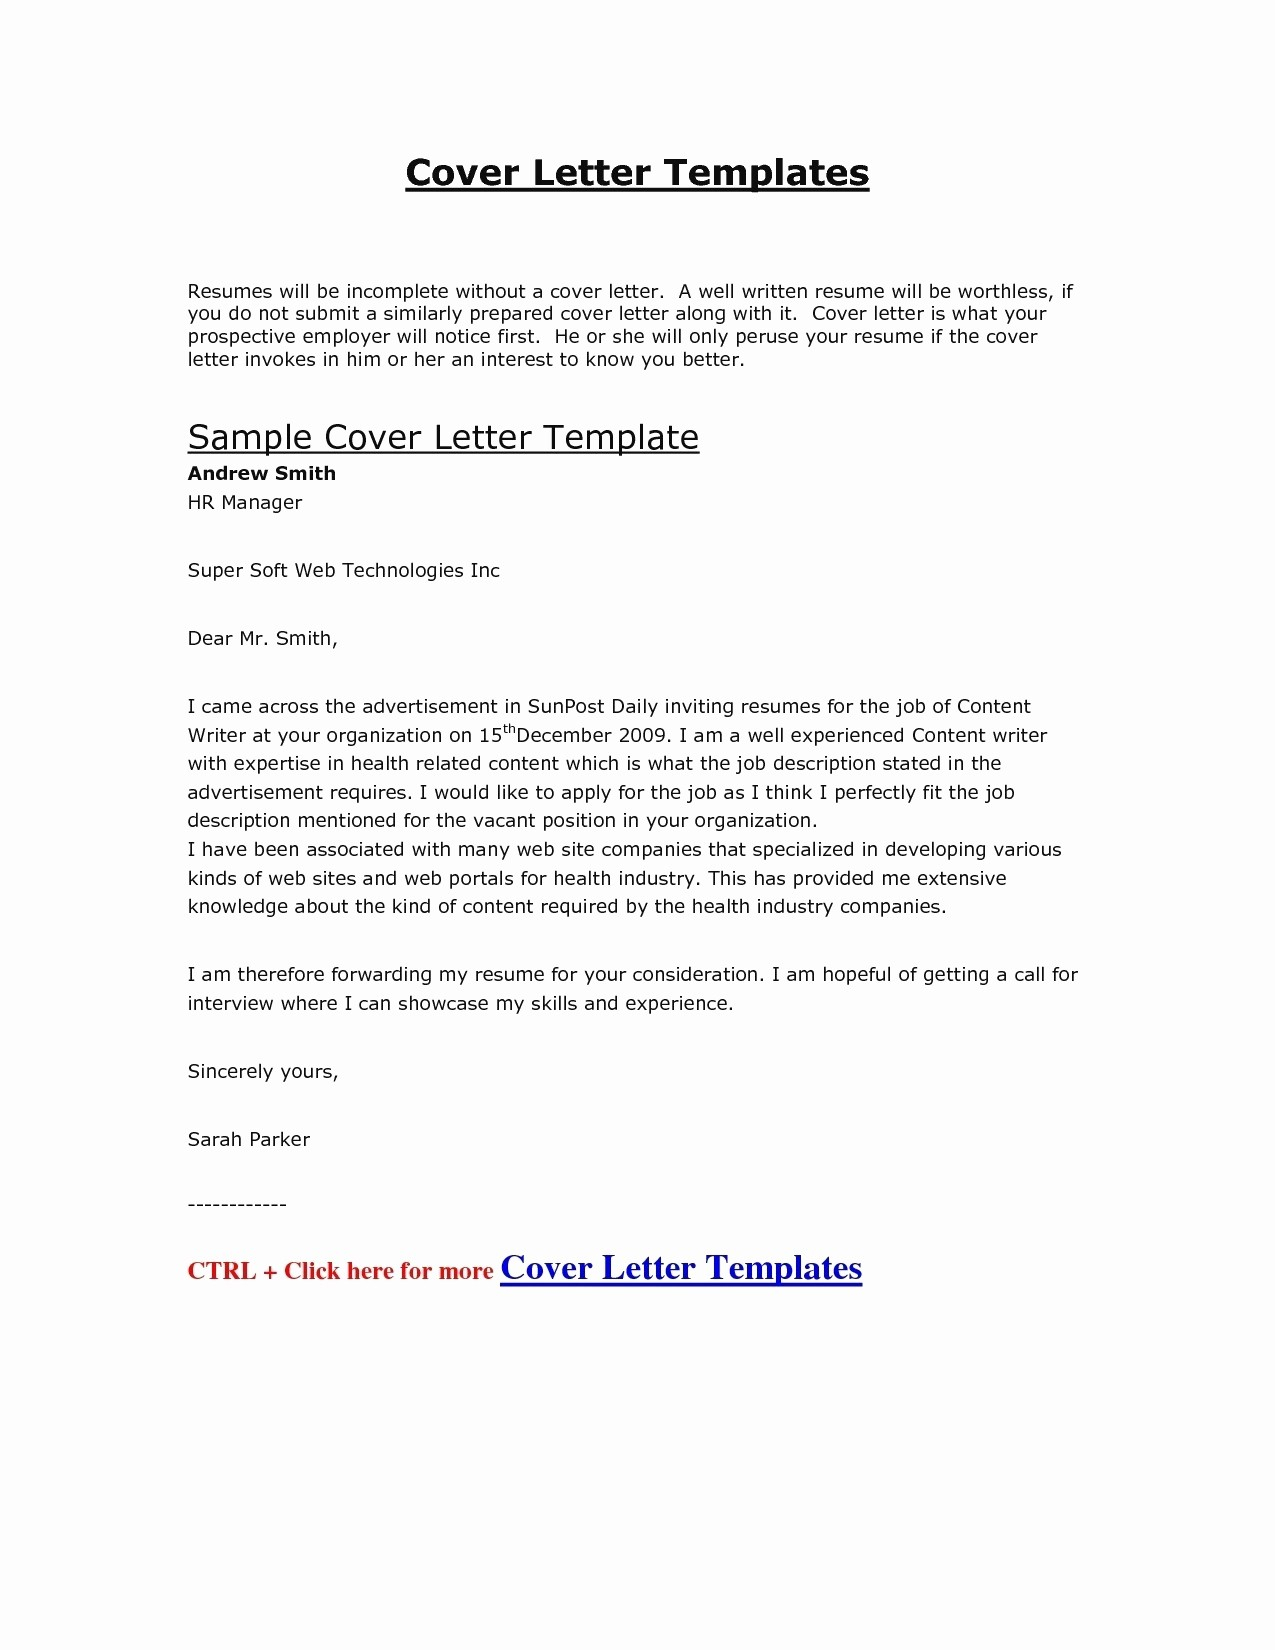 formal letter format template examples letter cover templates